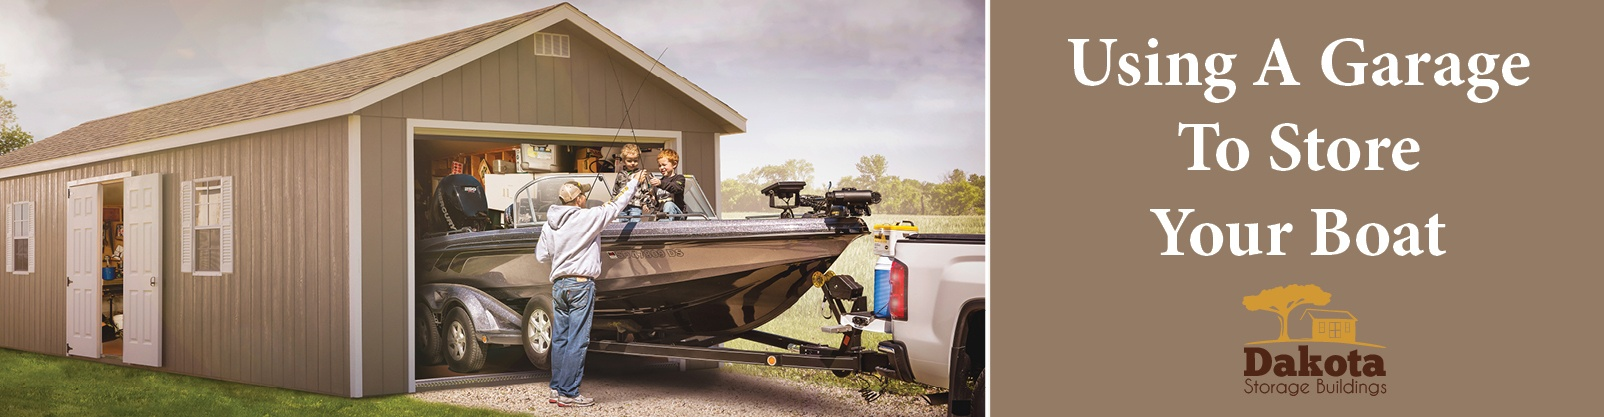 Using A Garage To Store Your Boat